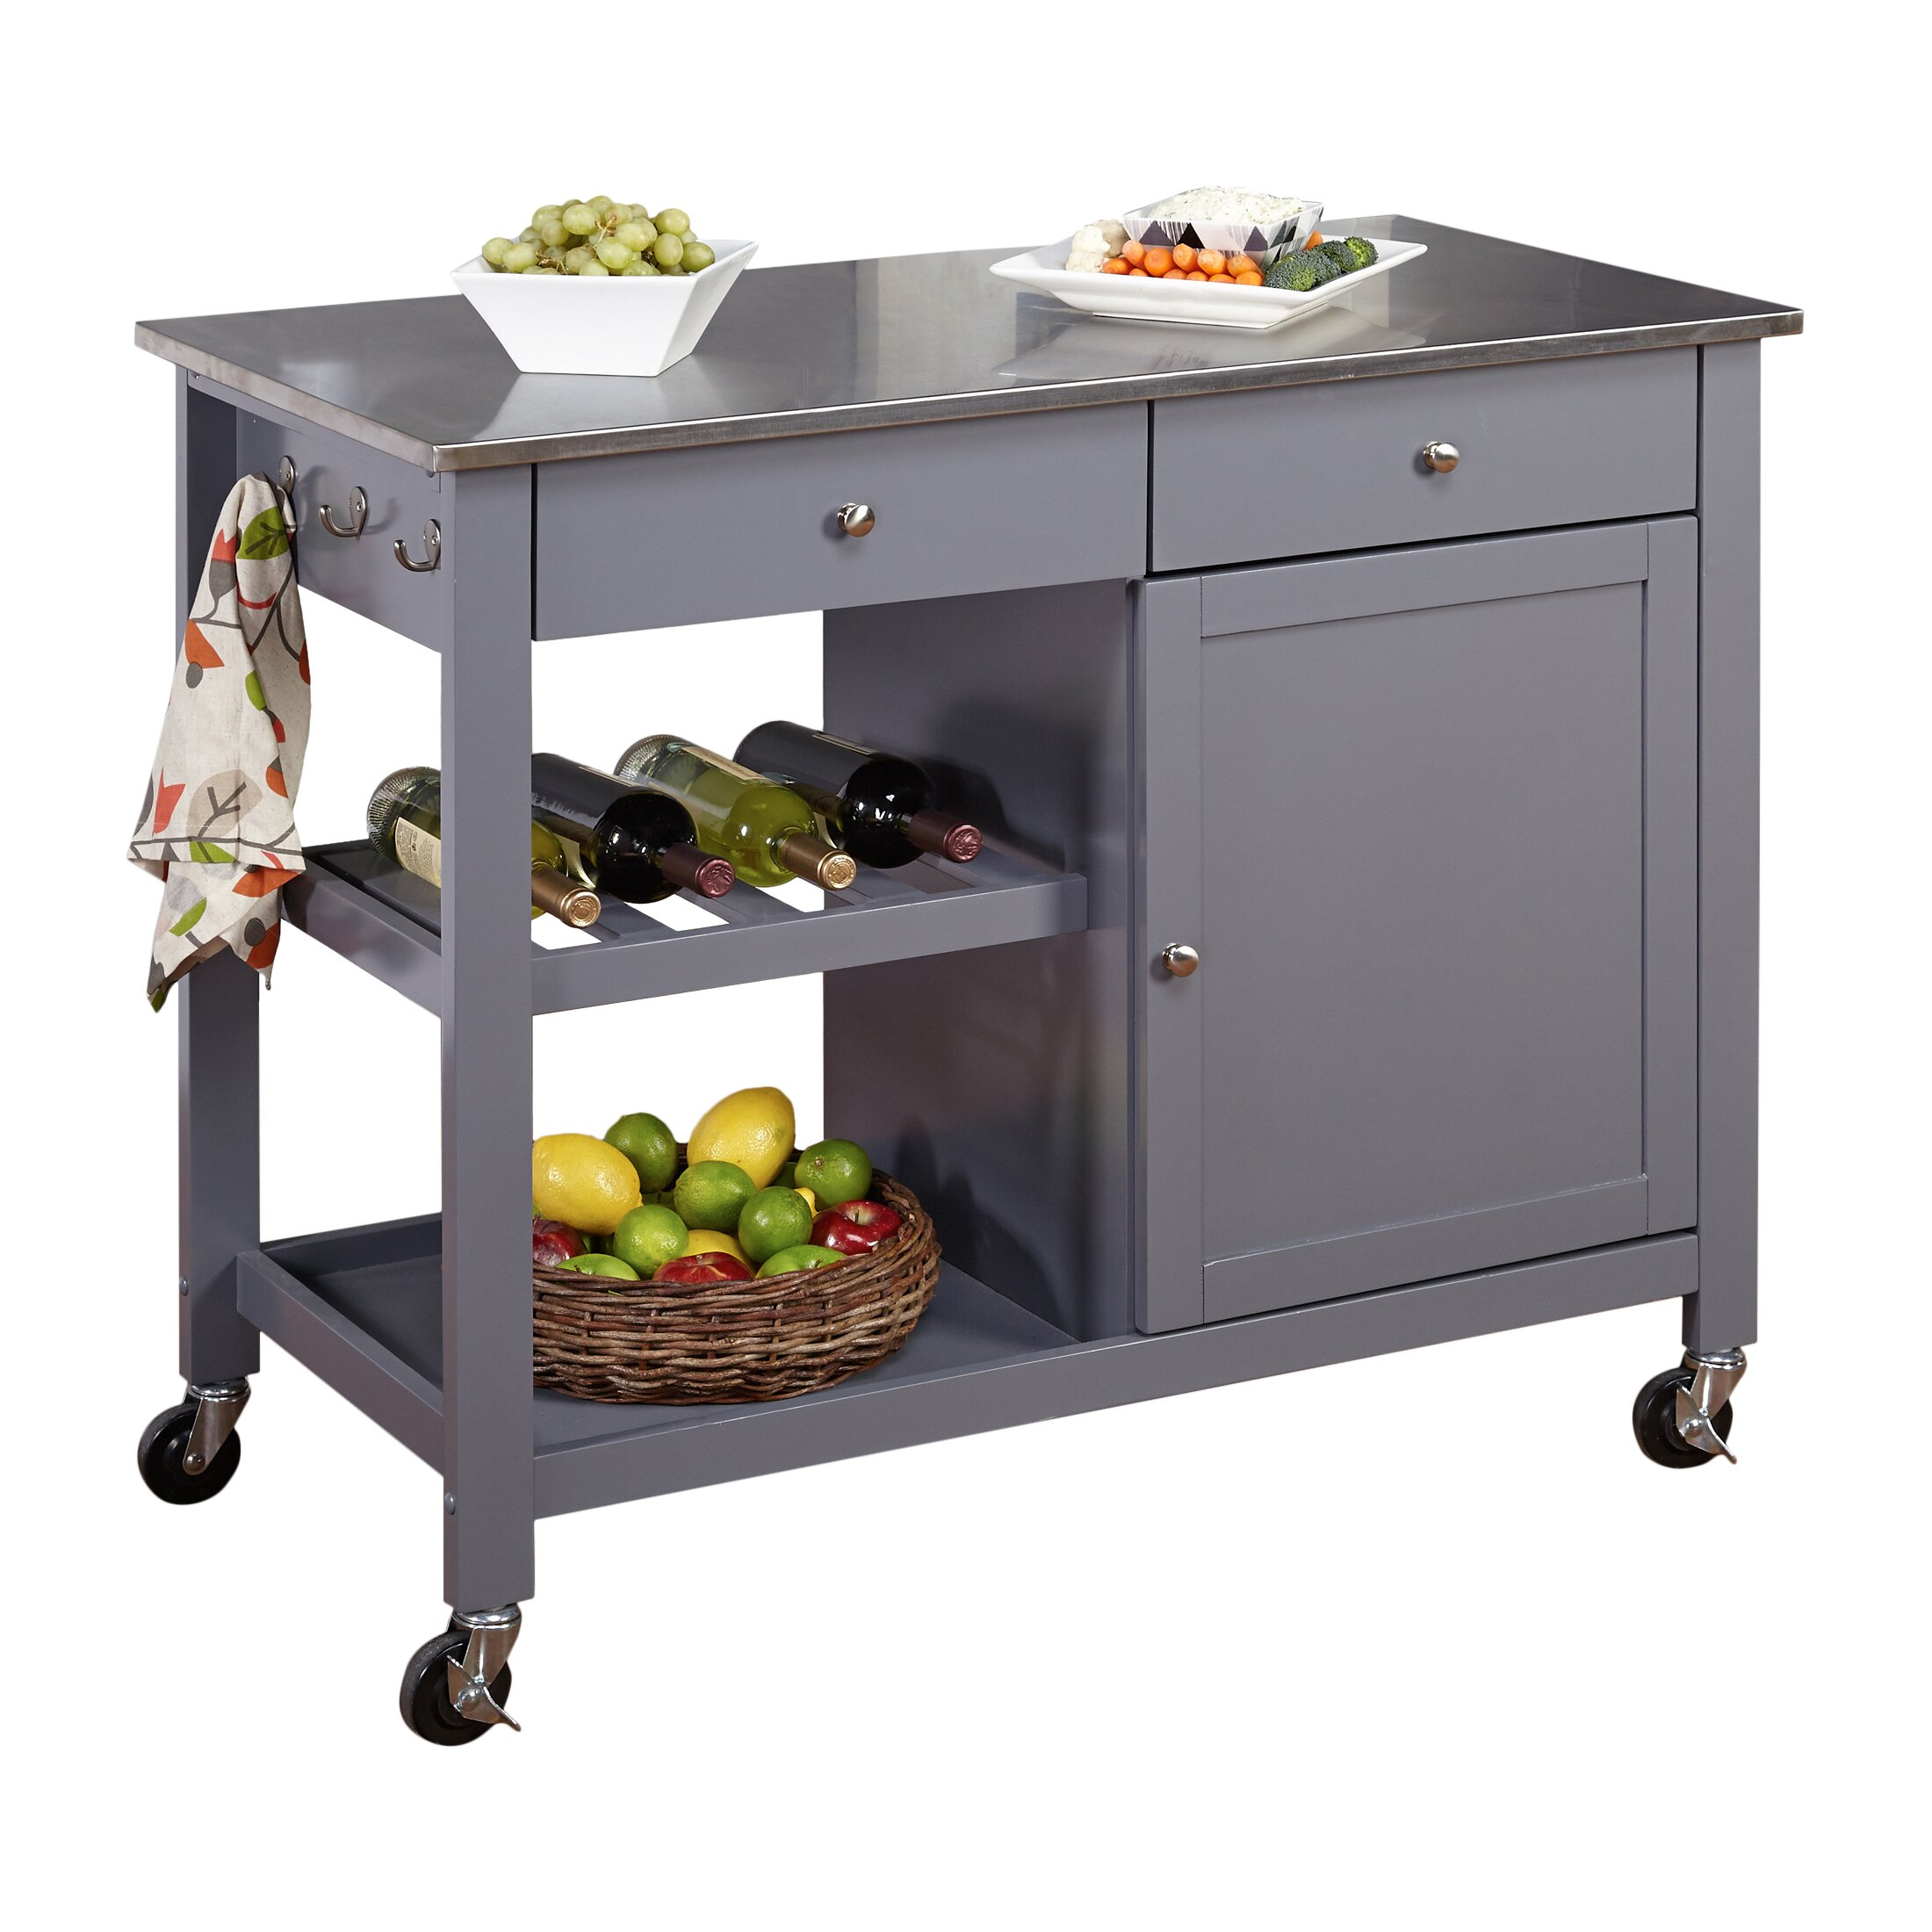 tms columbus kitchen island with stainless steel top crosley furniture cambridge stainless steel top kitchen